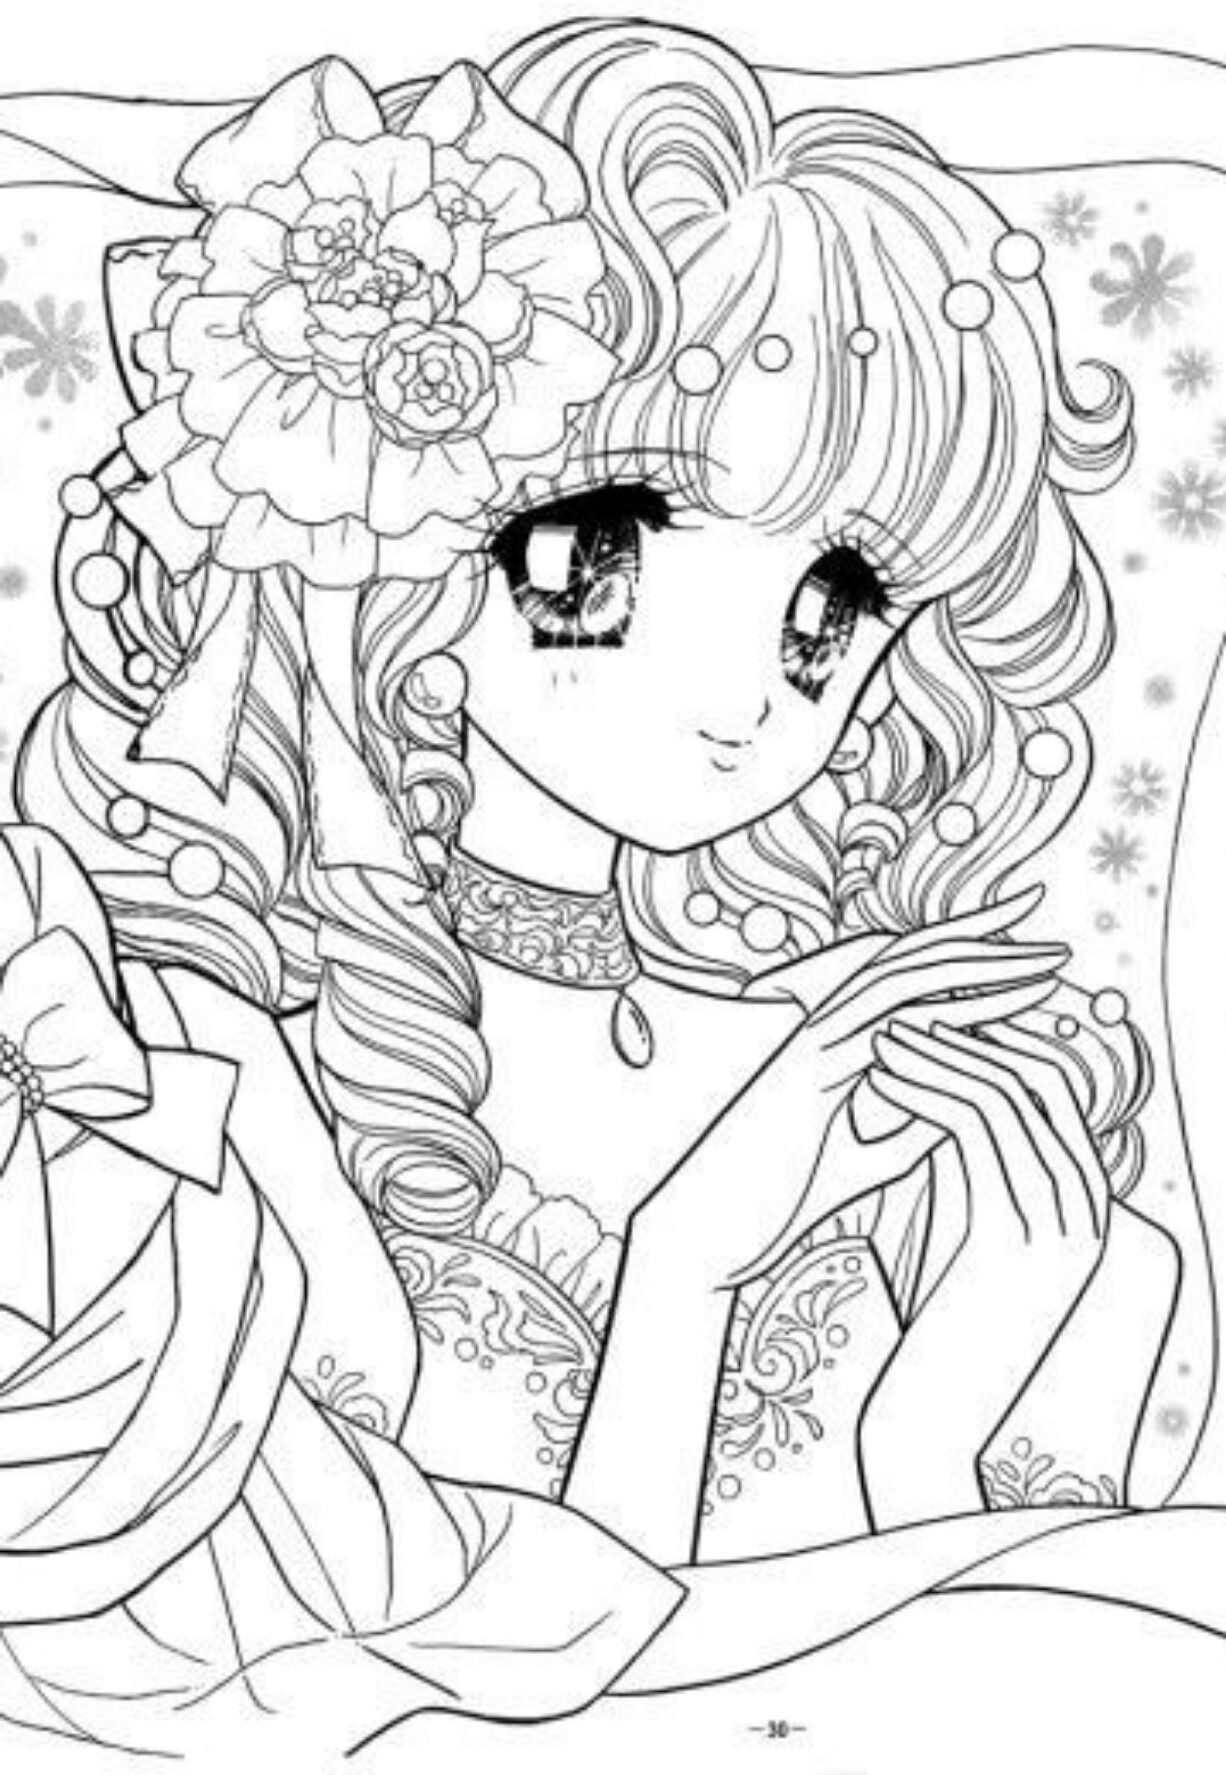 Pin By Tien Trinh On Thơ Coloring Pages Anime Anime Lineart Anime Coloring Pages